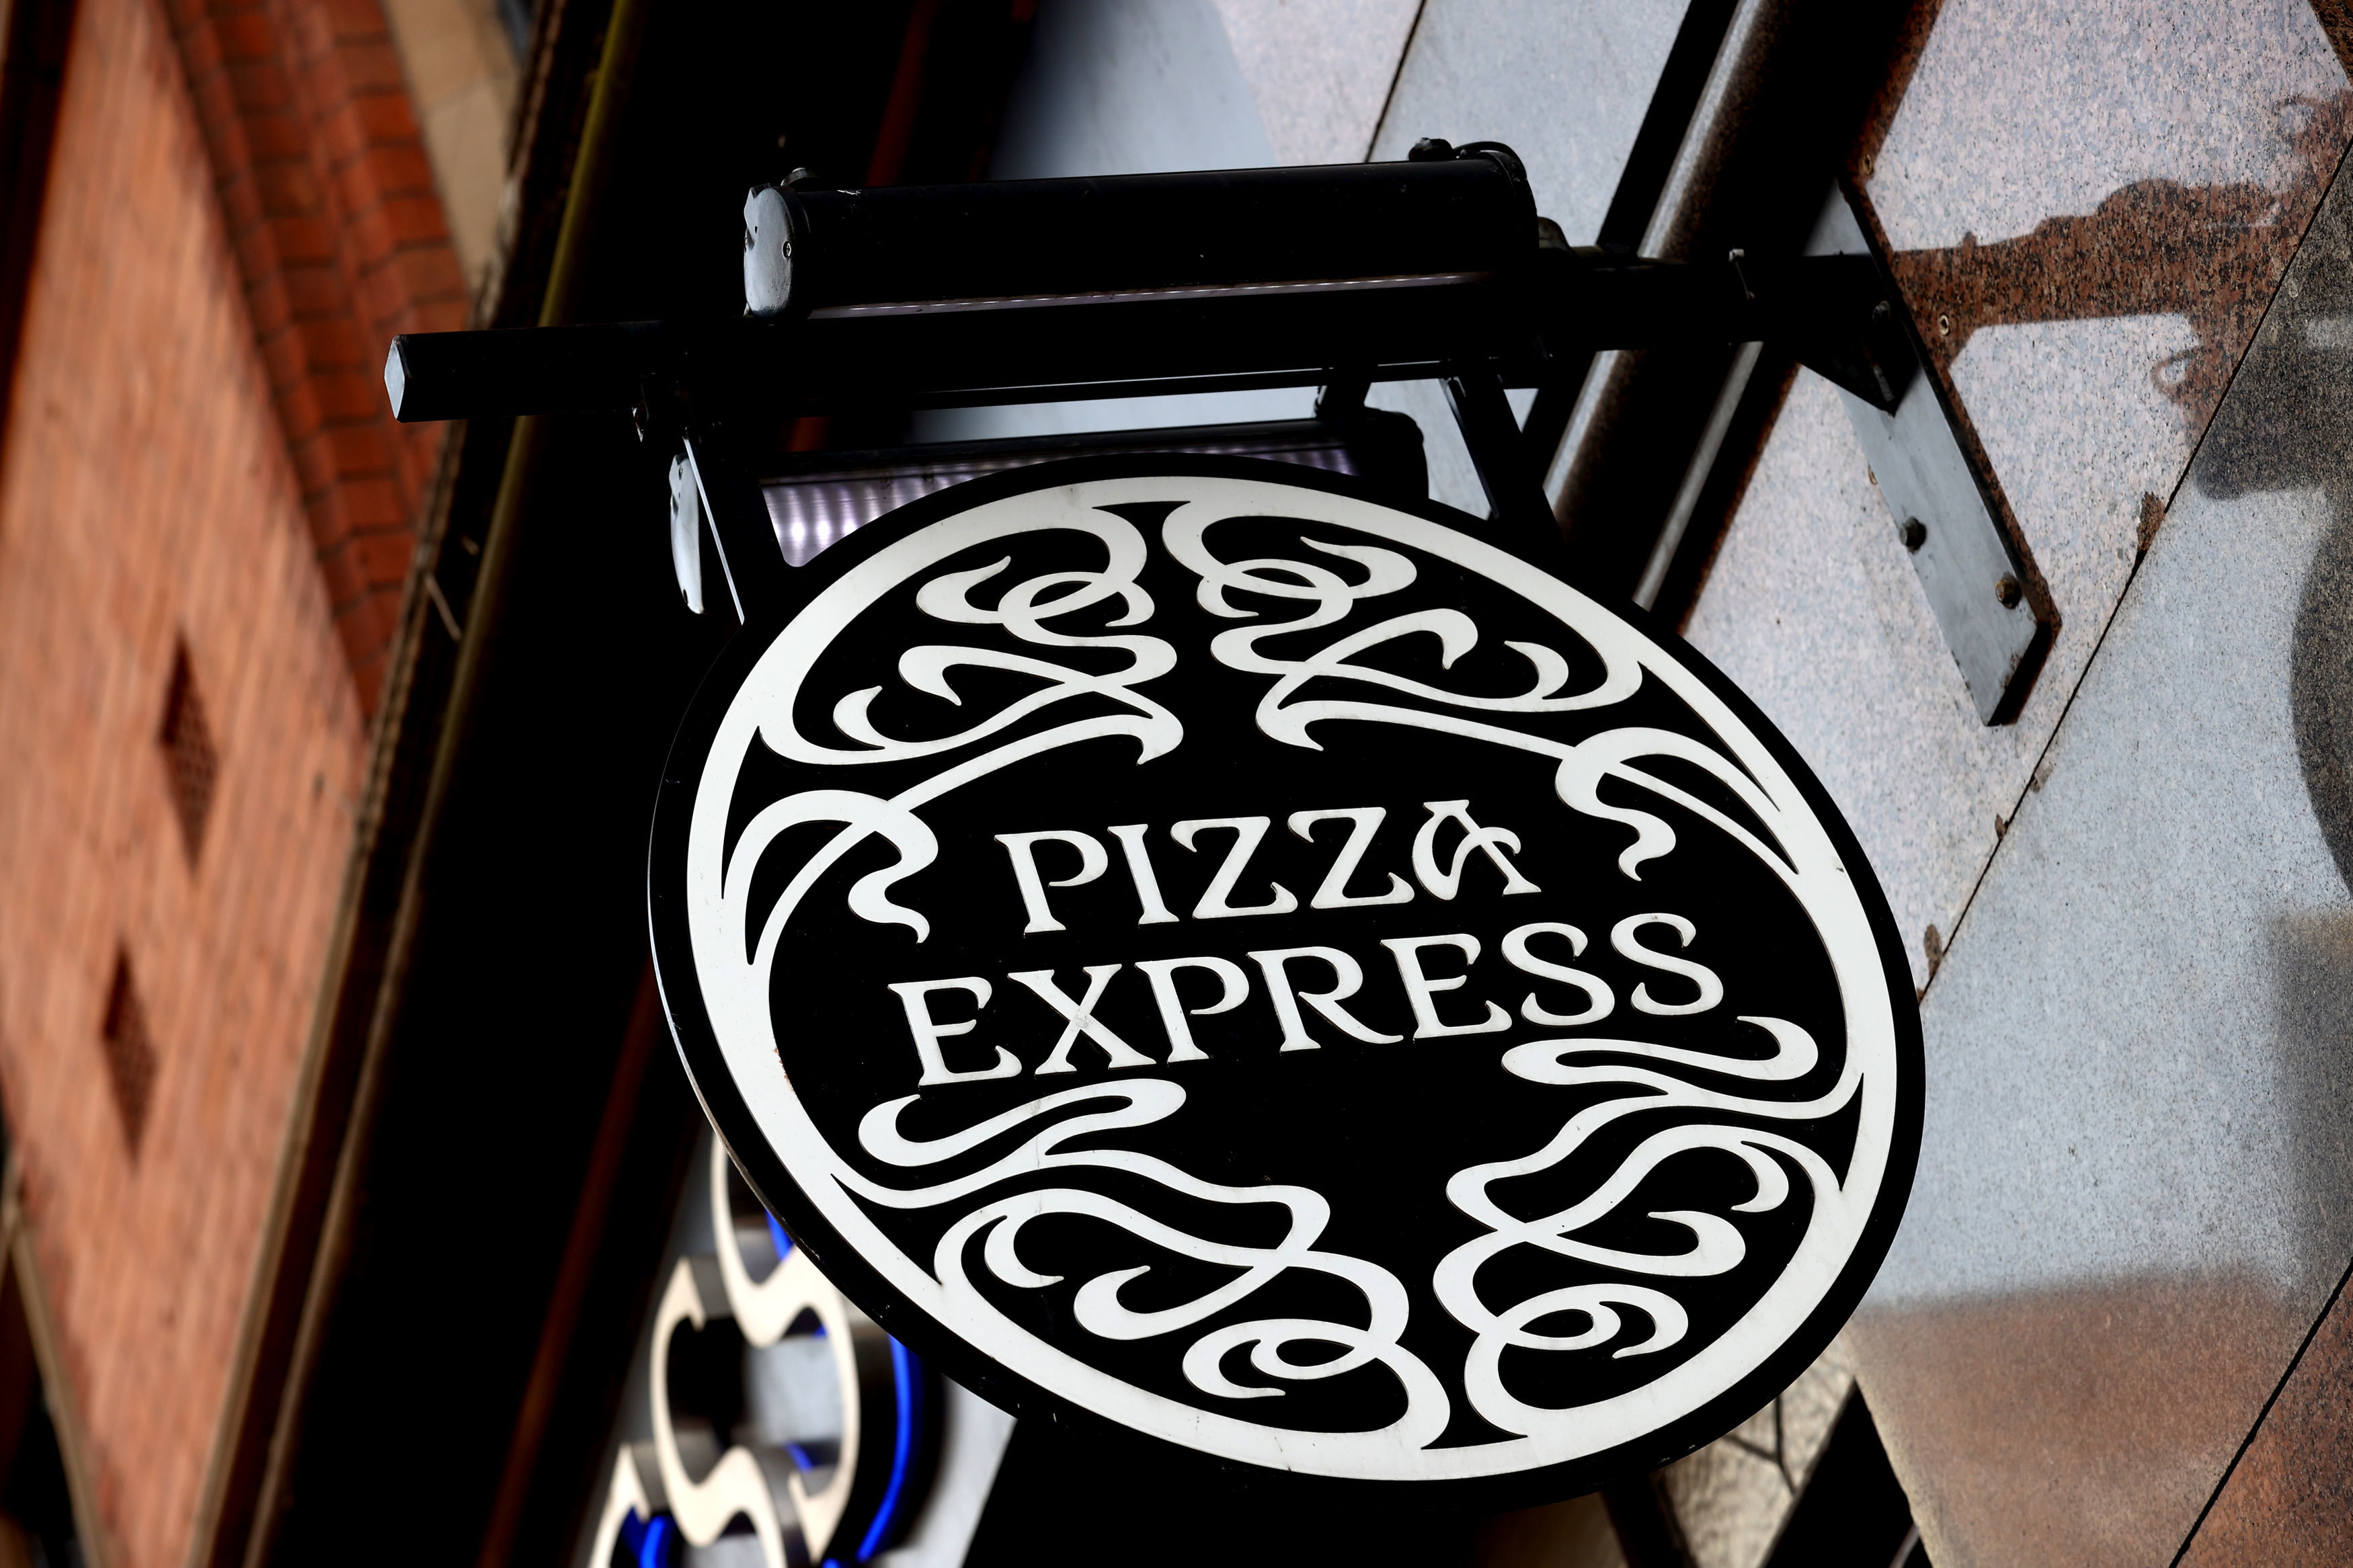 Pizza Express says its future is in doubt after publishing its most recent trading results